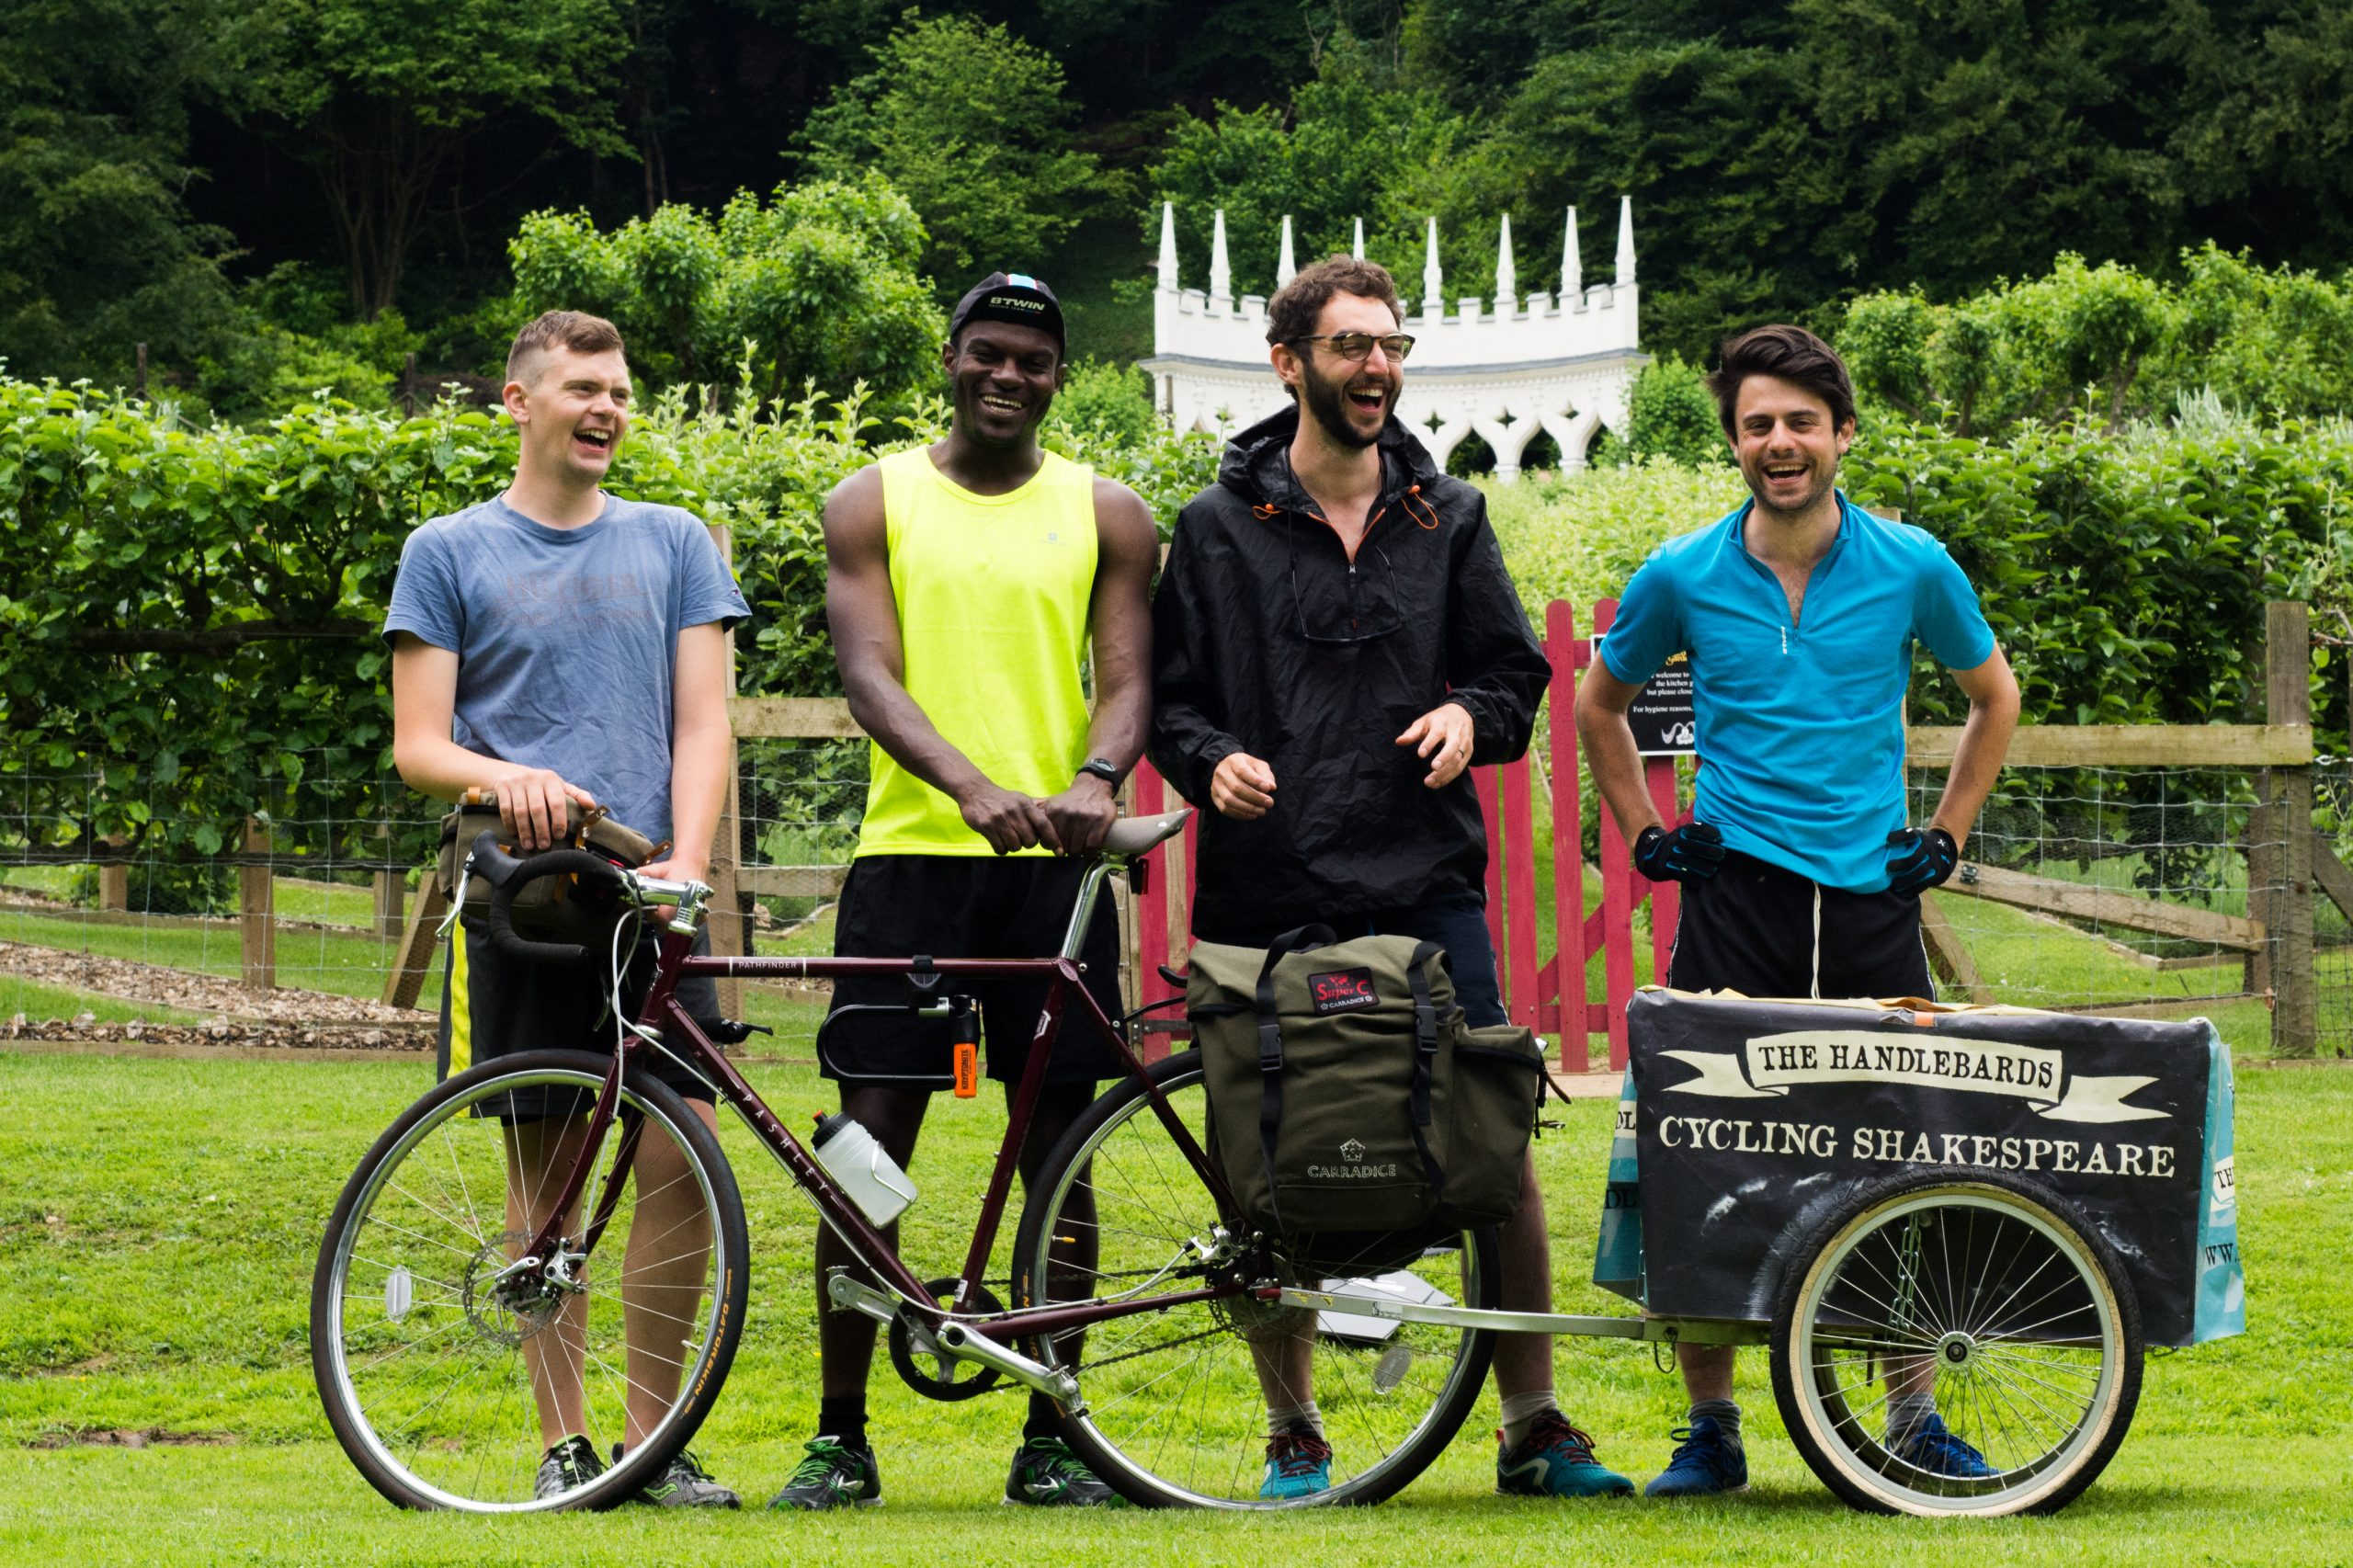 The HandleBards Boys (2016) with bicycle and trailer